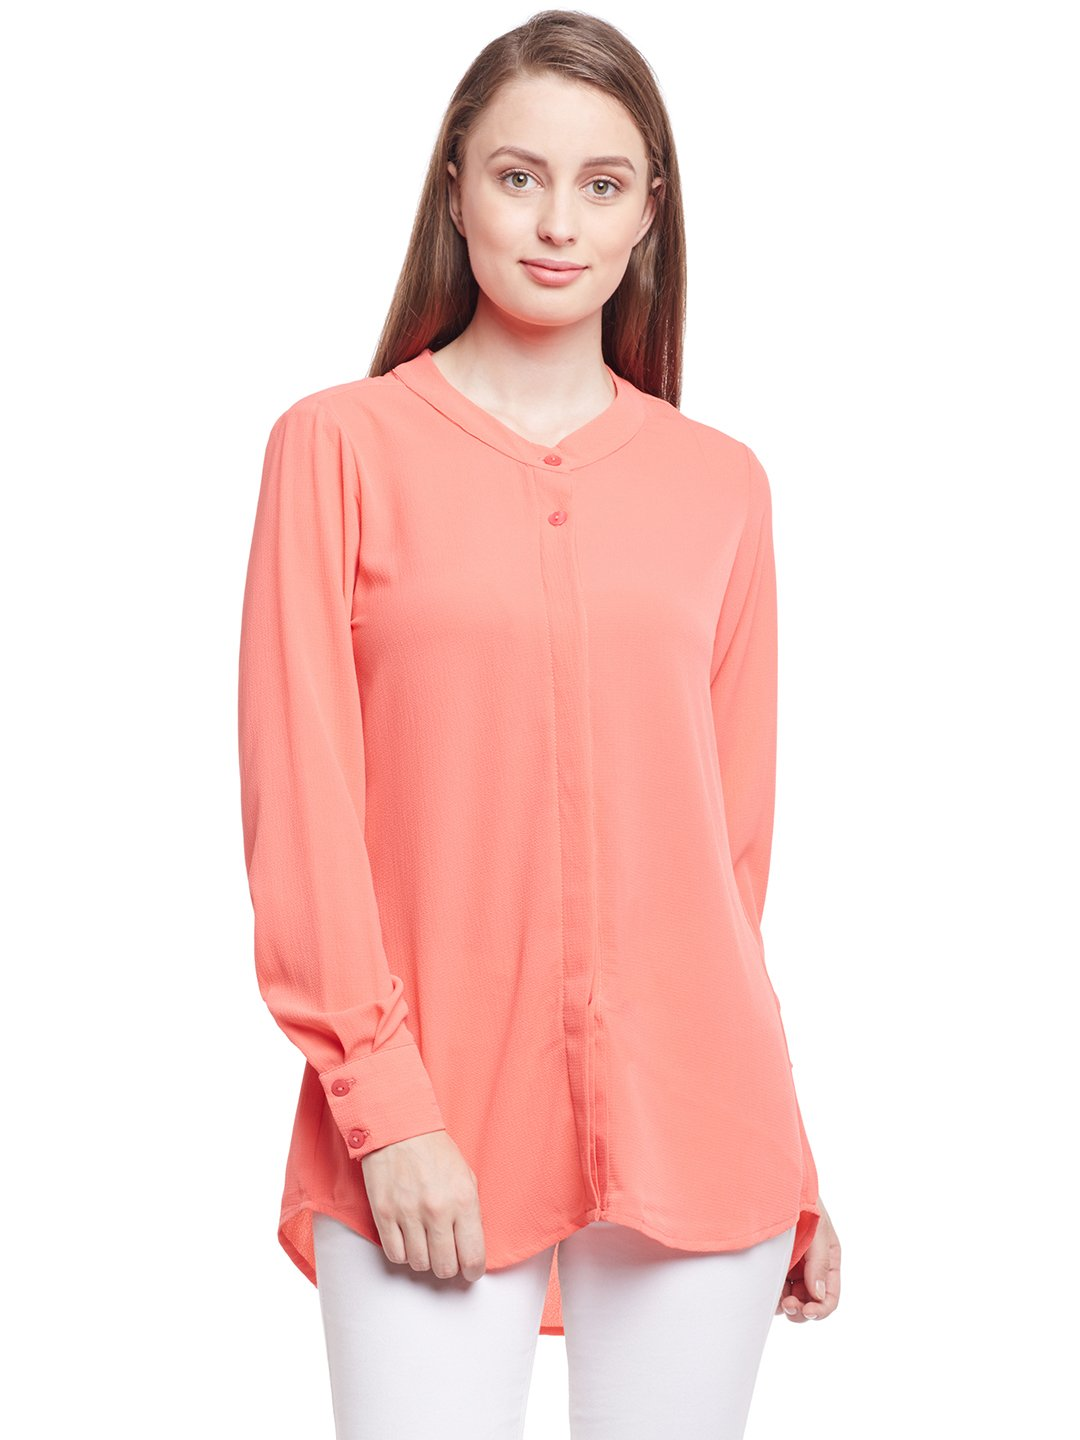 Castle Peach Bubble Georgette Shirt